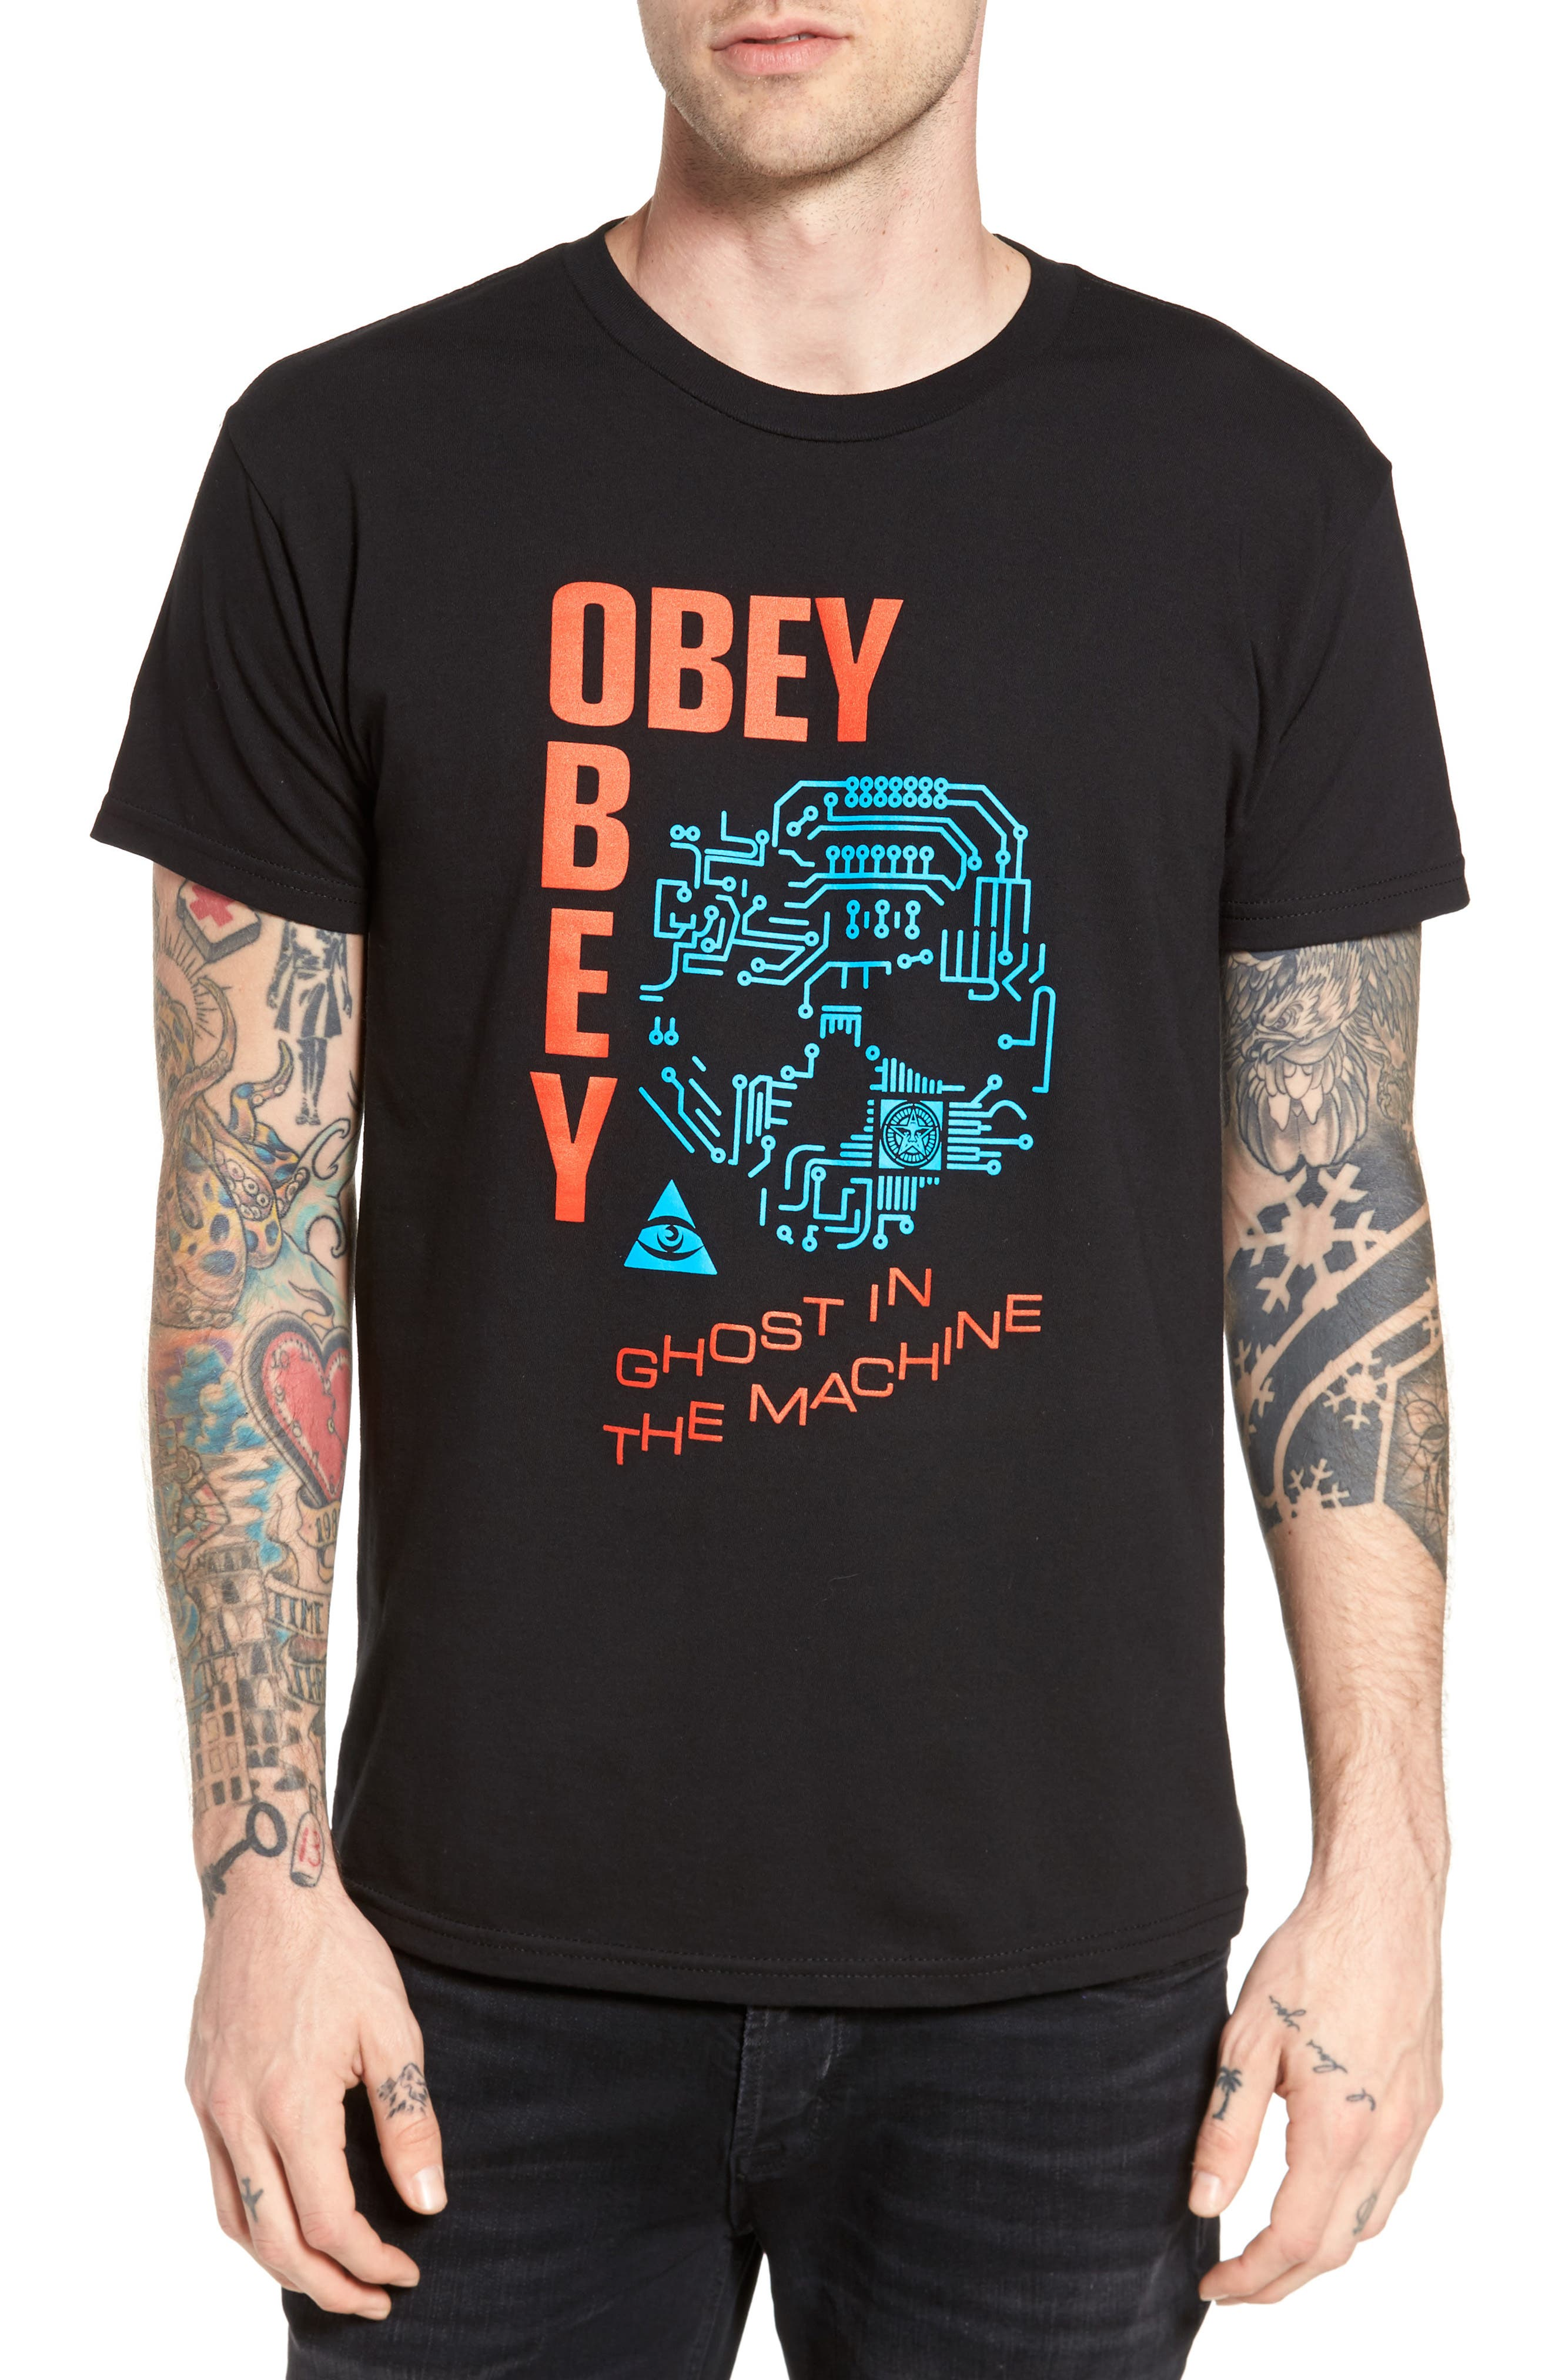 Obey Ghosts in the Machine Premium Graphic T-Shirt